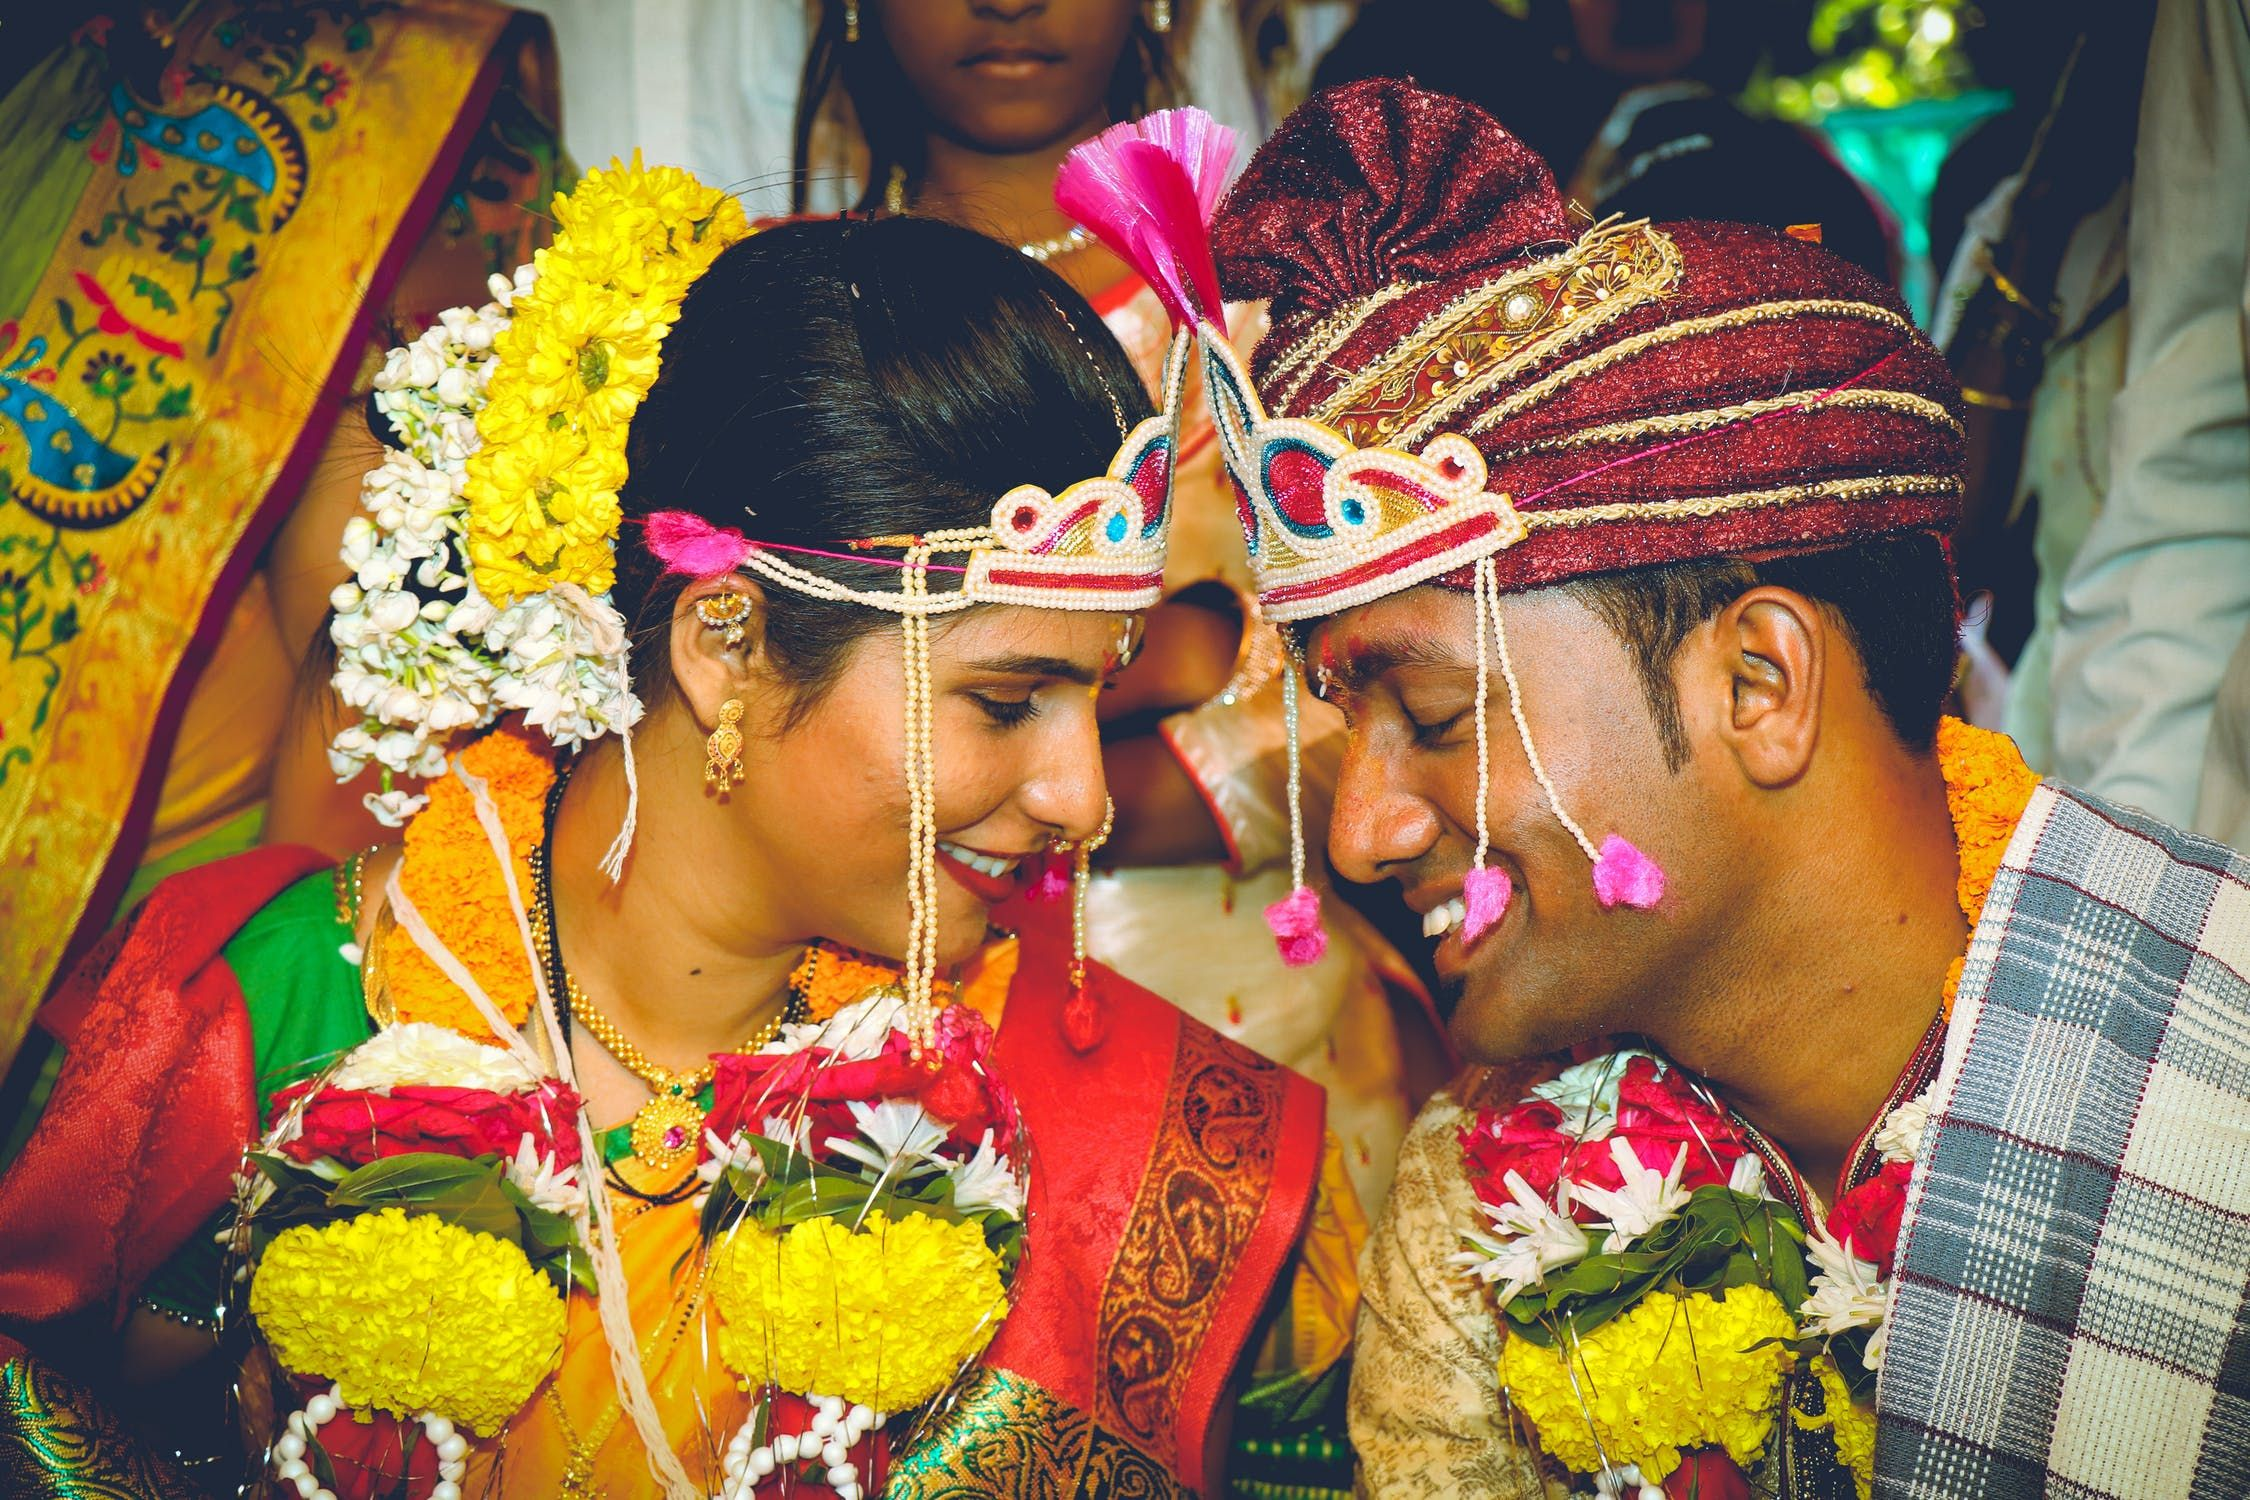 An Indian couple getting married